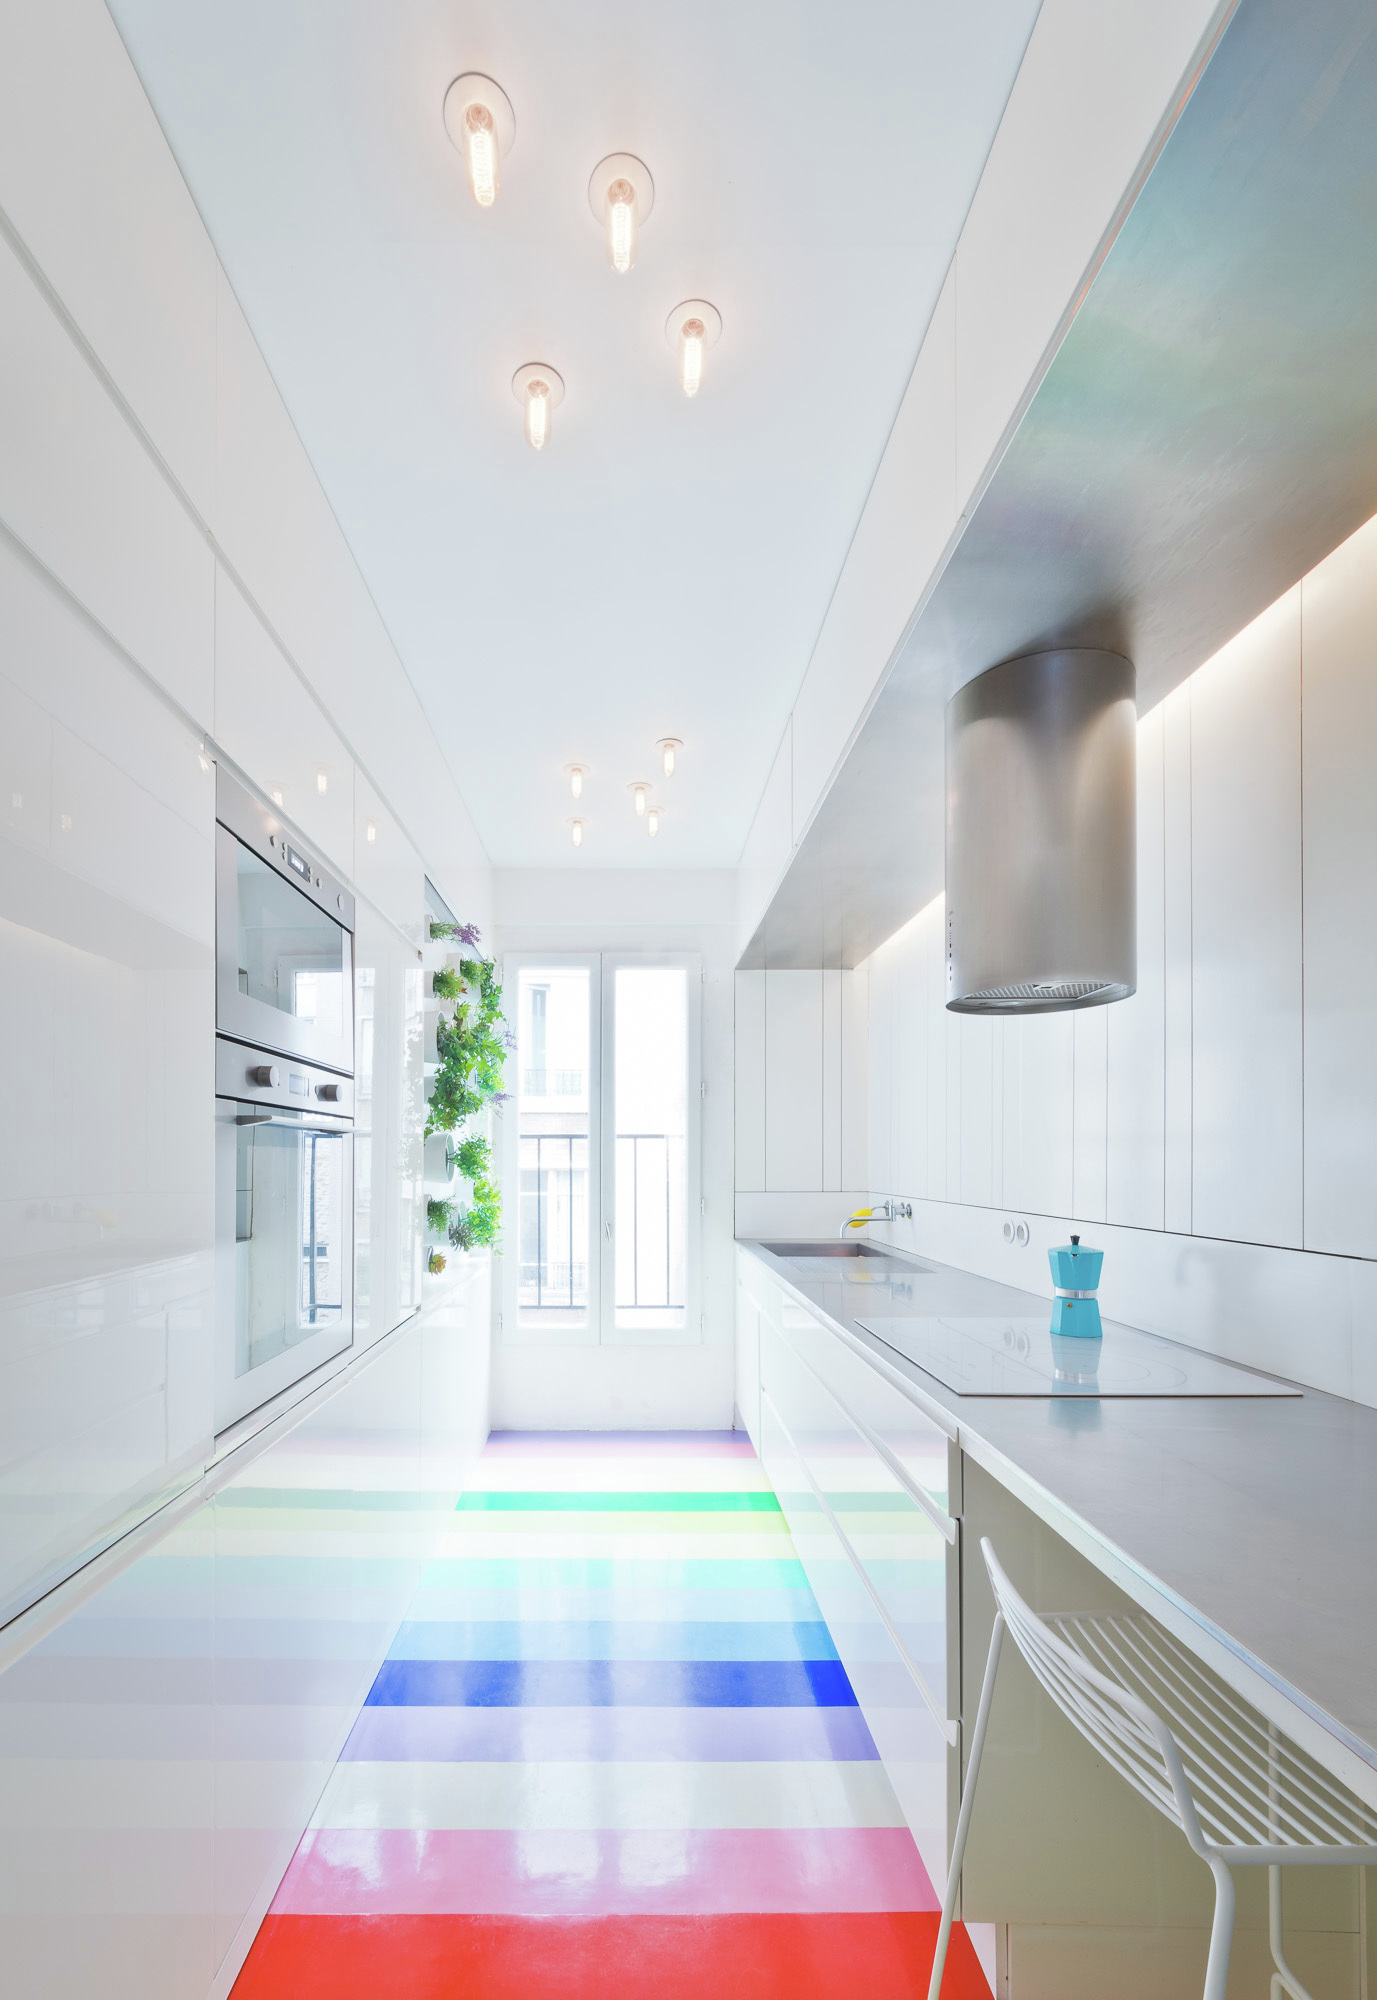 All white kitchen with colorful flooring